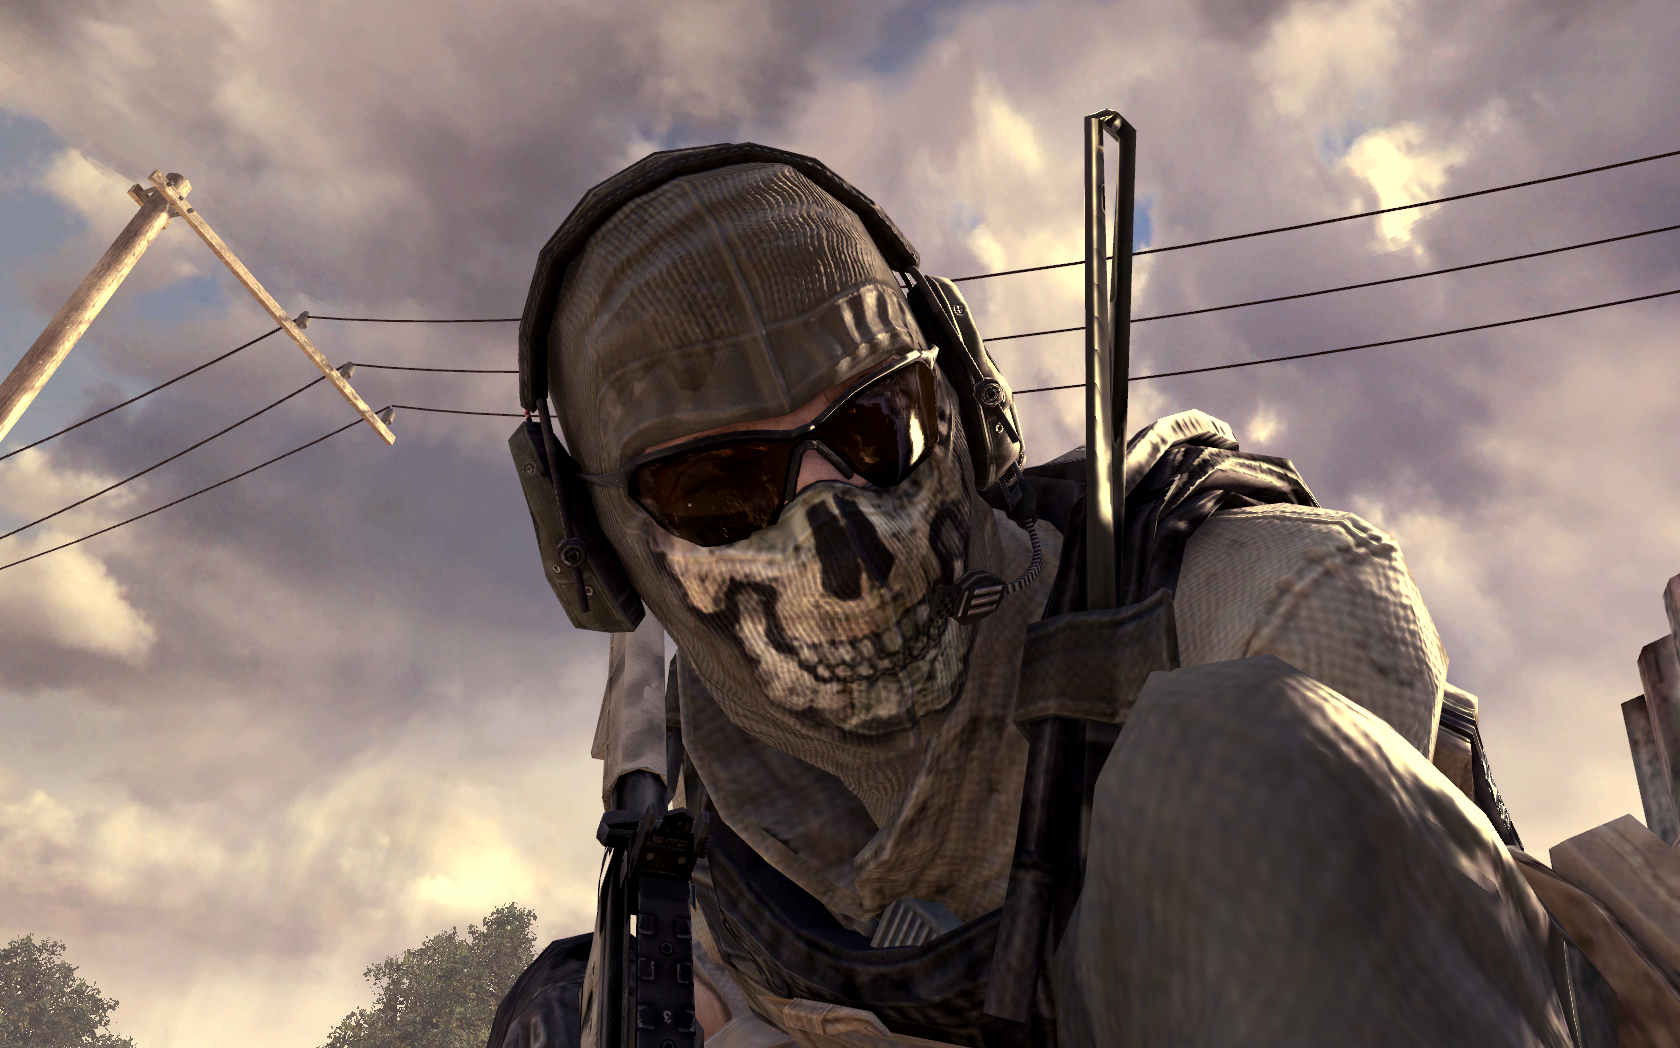 Ghost close-up MW2.png - The Call of Duty Wiki - Black Ops II, Ghosts ...